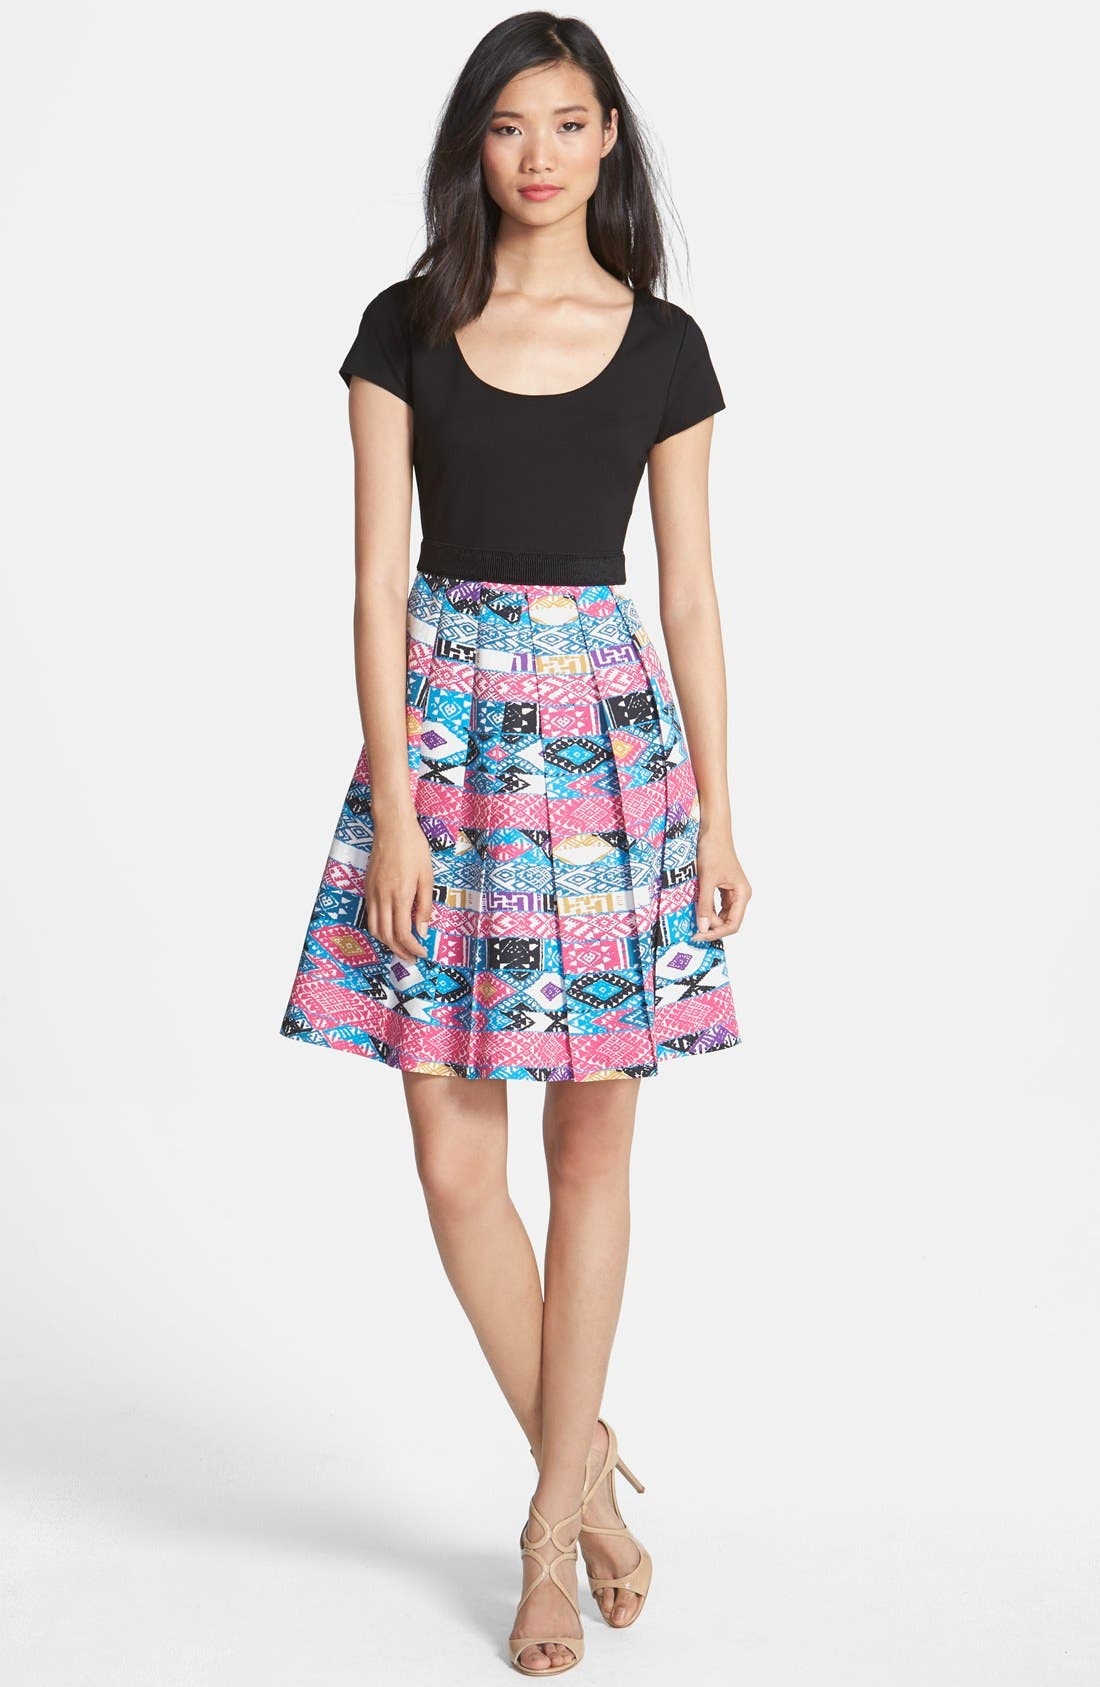 Alternate Image 1 Selected - Plenty by Tracy Reese 'Zoe' Print Skirt Fit & Flare Dress (Petite)